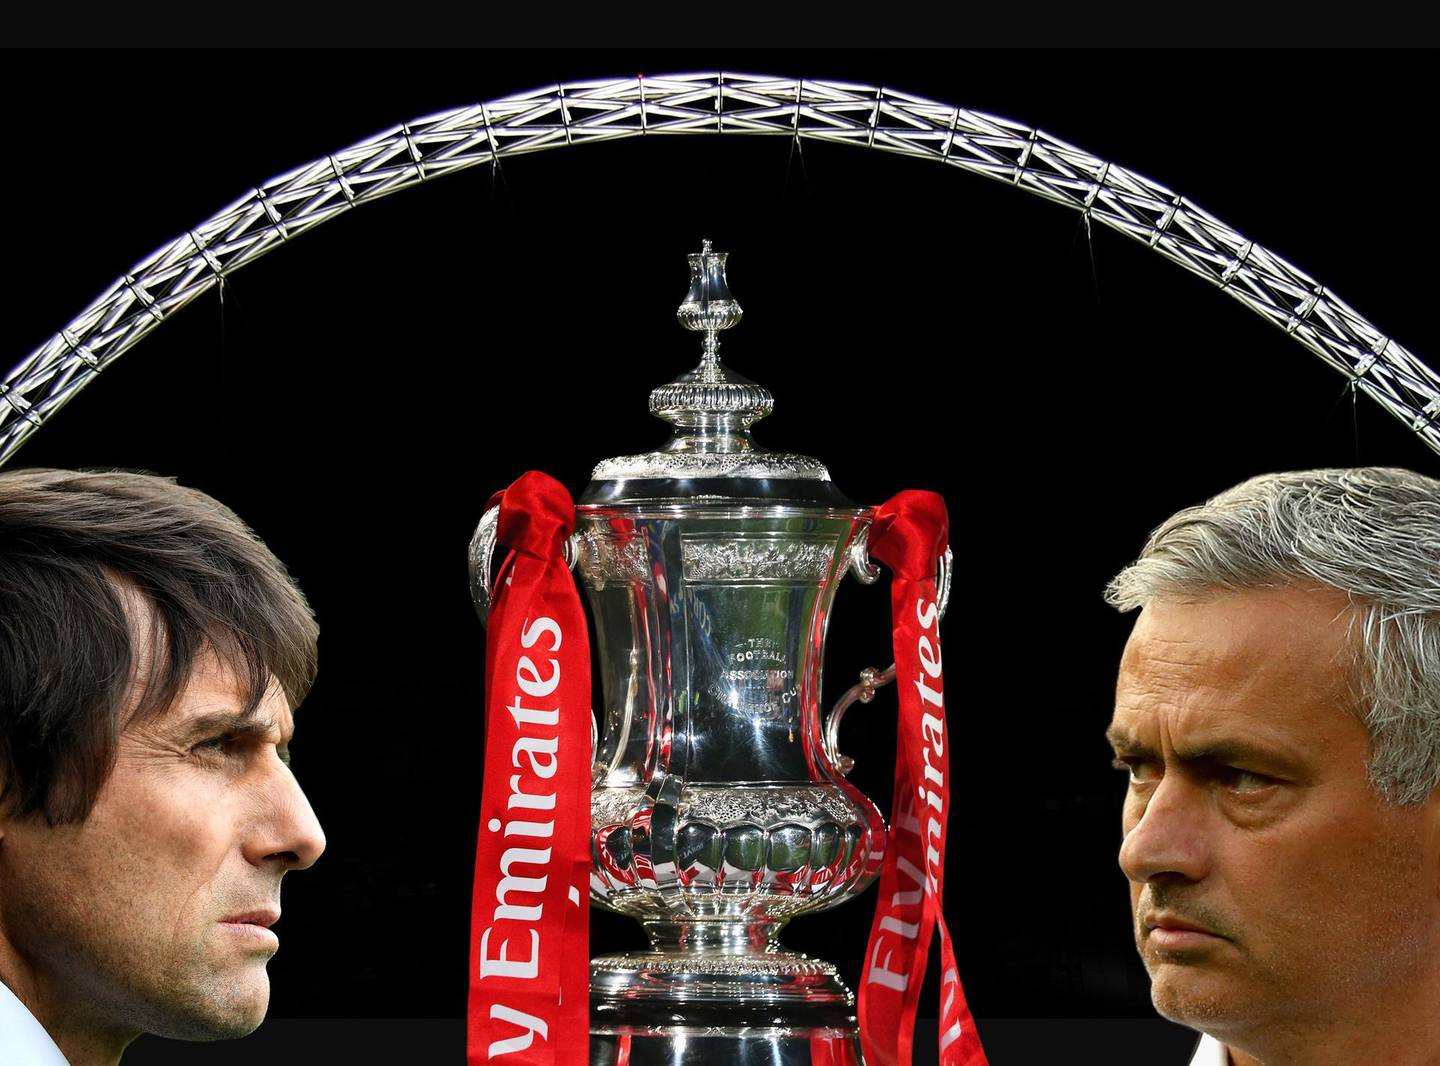 FILE PHOTO (EDITORS NOTE: COMPOSITE OF IMAGES - Image numbers 73035843,496018146,675114354,605866718) In this composite image a comparision has been made between  Antonio Conte, Manager of Chelsea (L) and  Jose Mourinho, Manager of Manchester United. Chelsea and Manchester United meet in the Emirates FA Cup Final at Wembley Stadium on May 19, 2018 in London,United Kingdom.    ***LEFT IMAGE*** LIVERPOOL, ENGLAND - APRIL 30: Antonio Conte, Manager of Chelsea looks on prior to the Premier League match between Everton and Chelsea at Goodison Park on April 30, 2017 in Liverpool, England. (Photo by Laurence Griffiths/Getty Images) ***RIGHT IMAGE***  ROTTERDAM, NETHERLANDS - SEPTEMBER 15: Jose Mourinho, Manager of Manchester United looks on prior to the UEFA Europa League Group A match between Feyenoord and Manchester United FC at Feijenoord Stadion on September 15, 2016 in Rotterdam, . (Photo by Dean Mouhtaropoulos/Getty Images)